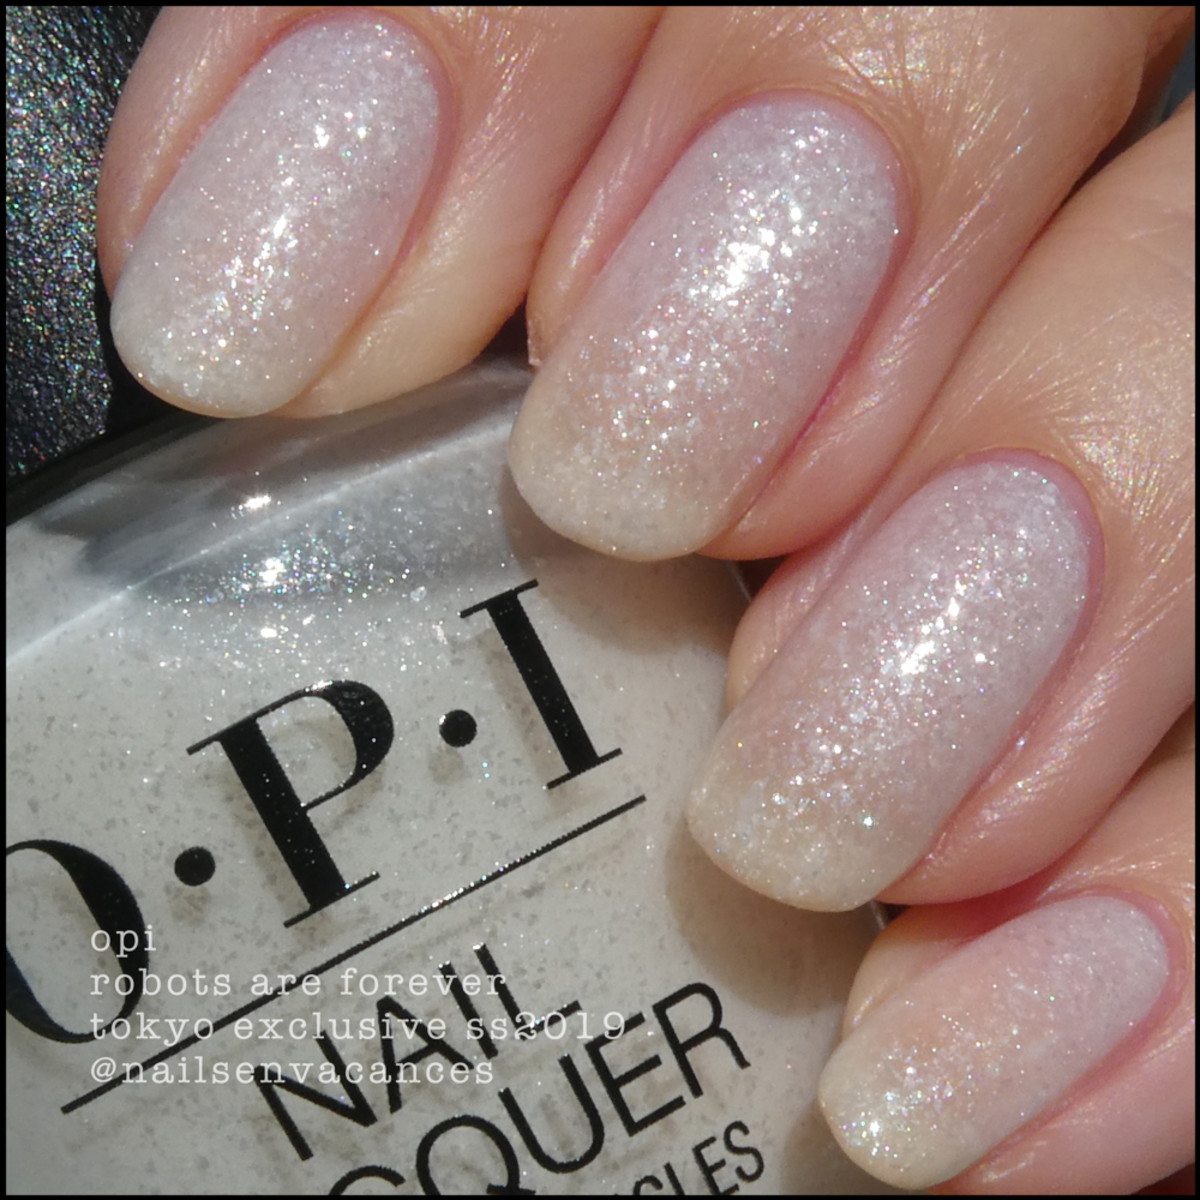 OPI Robots are Forever - OPI Tokyo Ulta Exclusives ss2019